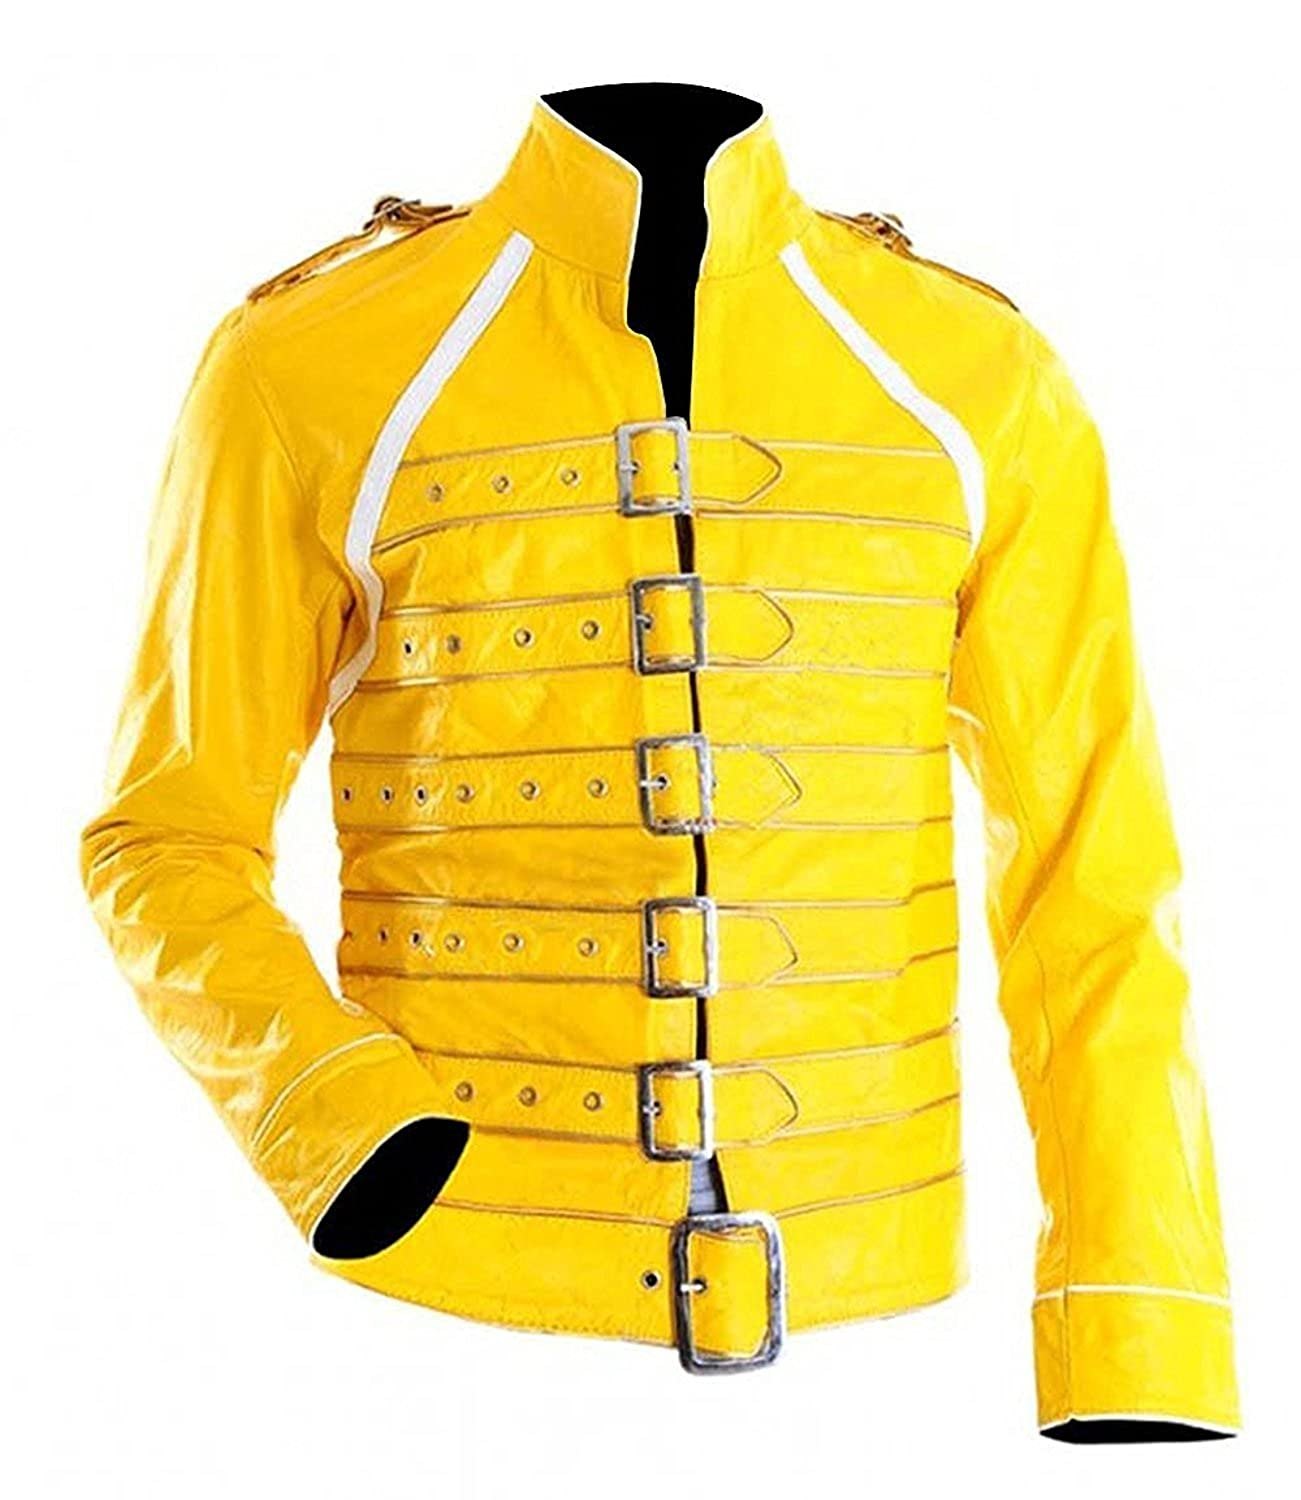 NMFashions Freddie Mercury Yellow Wembley Faux Leather Jacket Costume